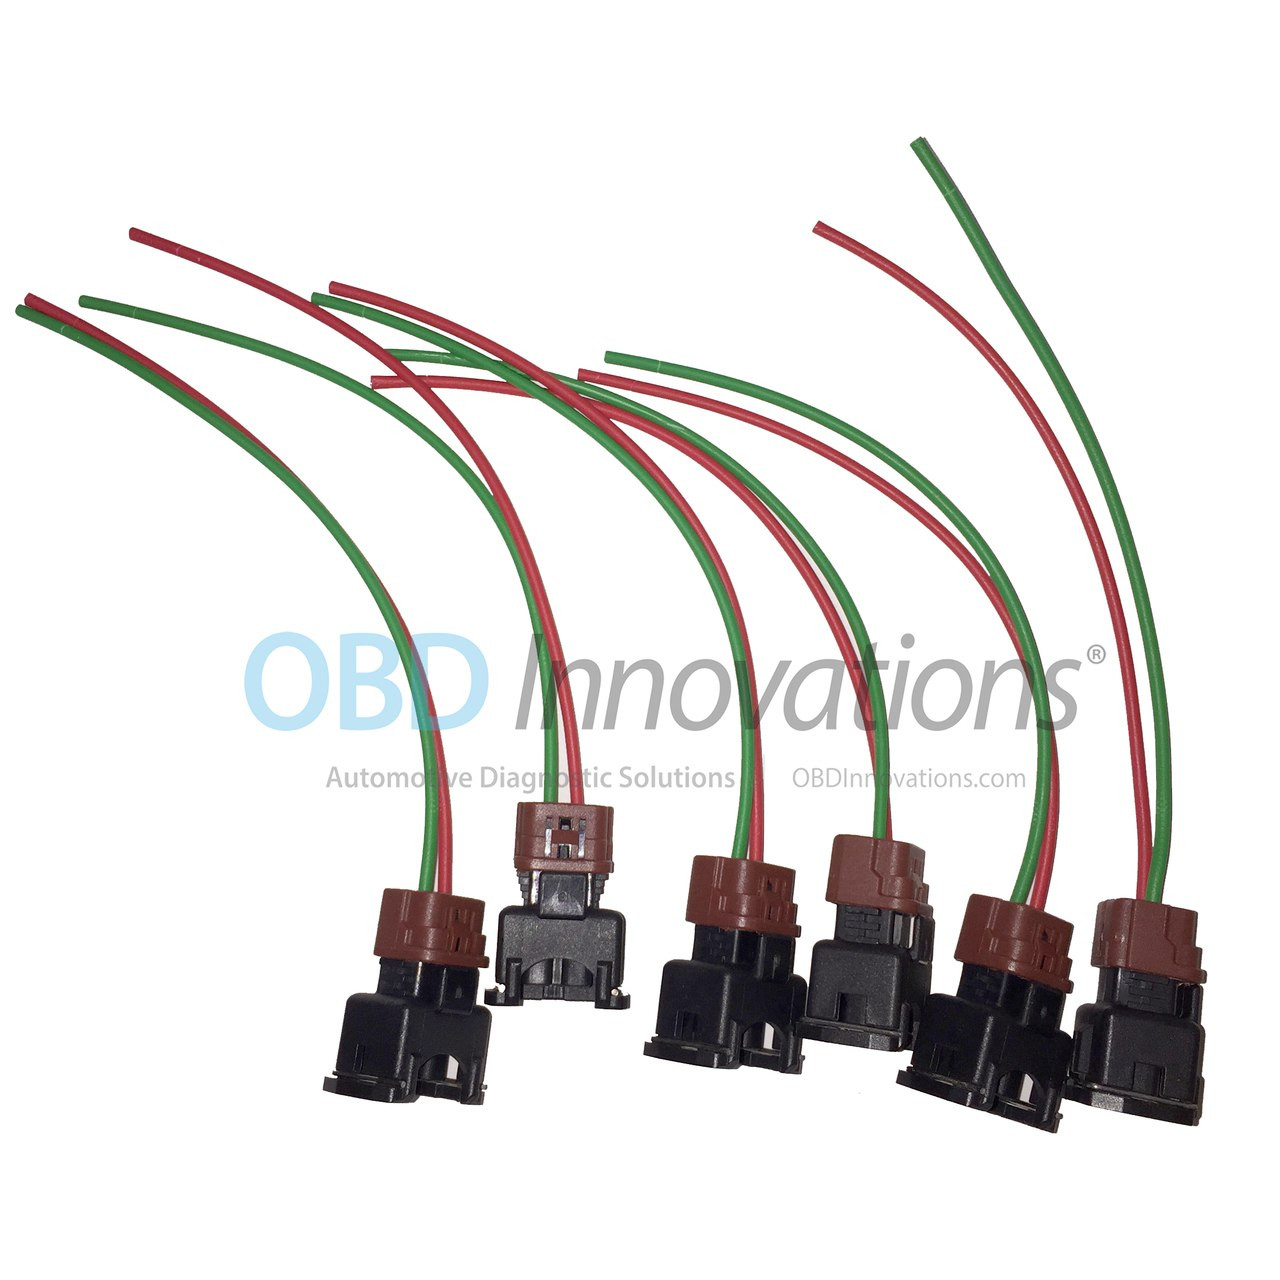 medium resolution of fuel injector connector 300zx z32 90 94 tt obd innovations fuel injector connectors wiring harness fits nissan 300zx 1990